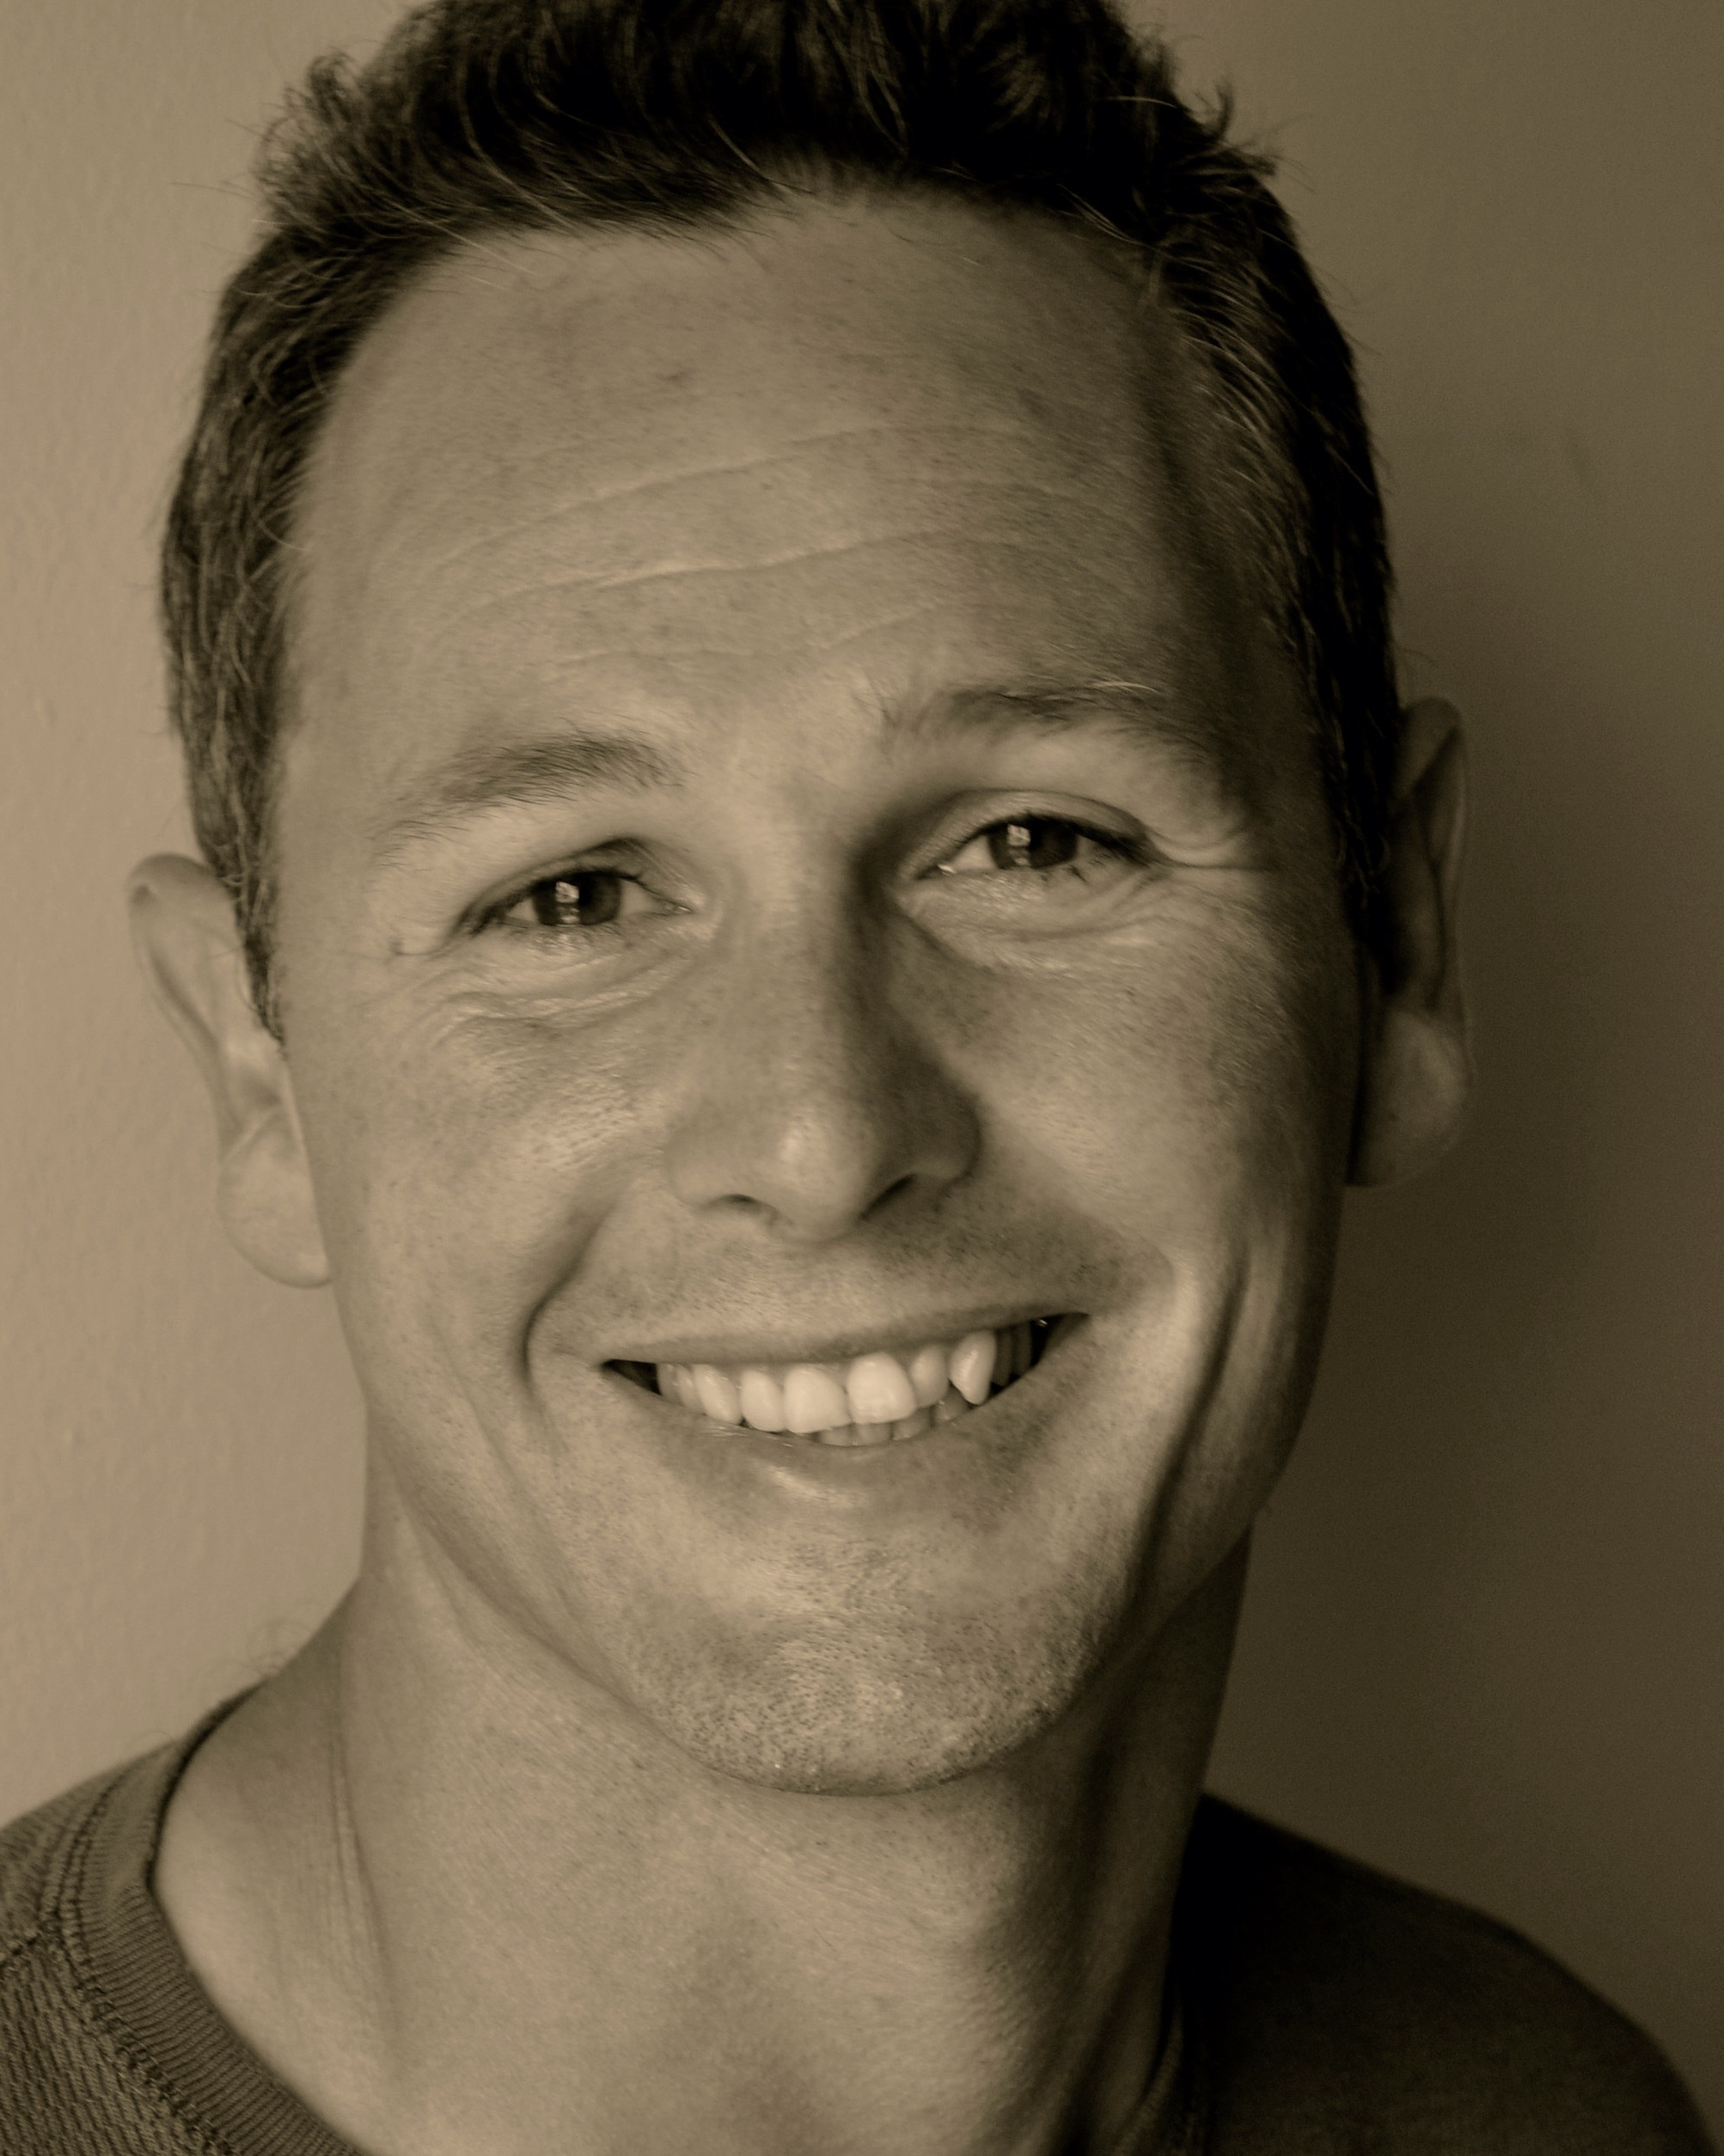 Paul - Paul's teaching style is influenced by the Yogaworks system, his martial arts background and his love of people.